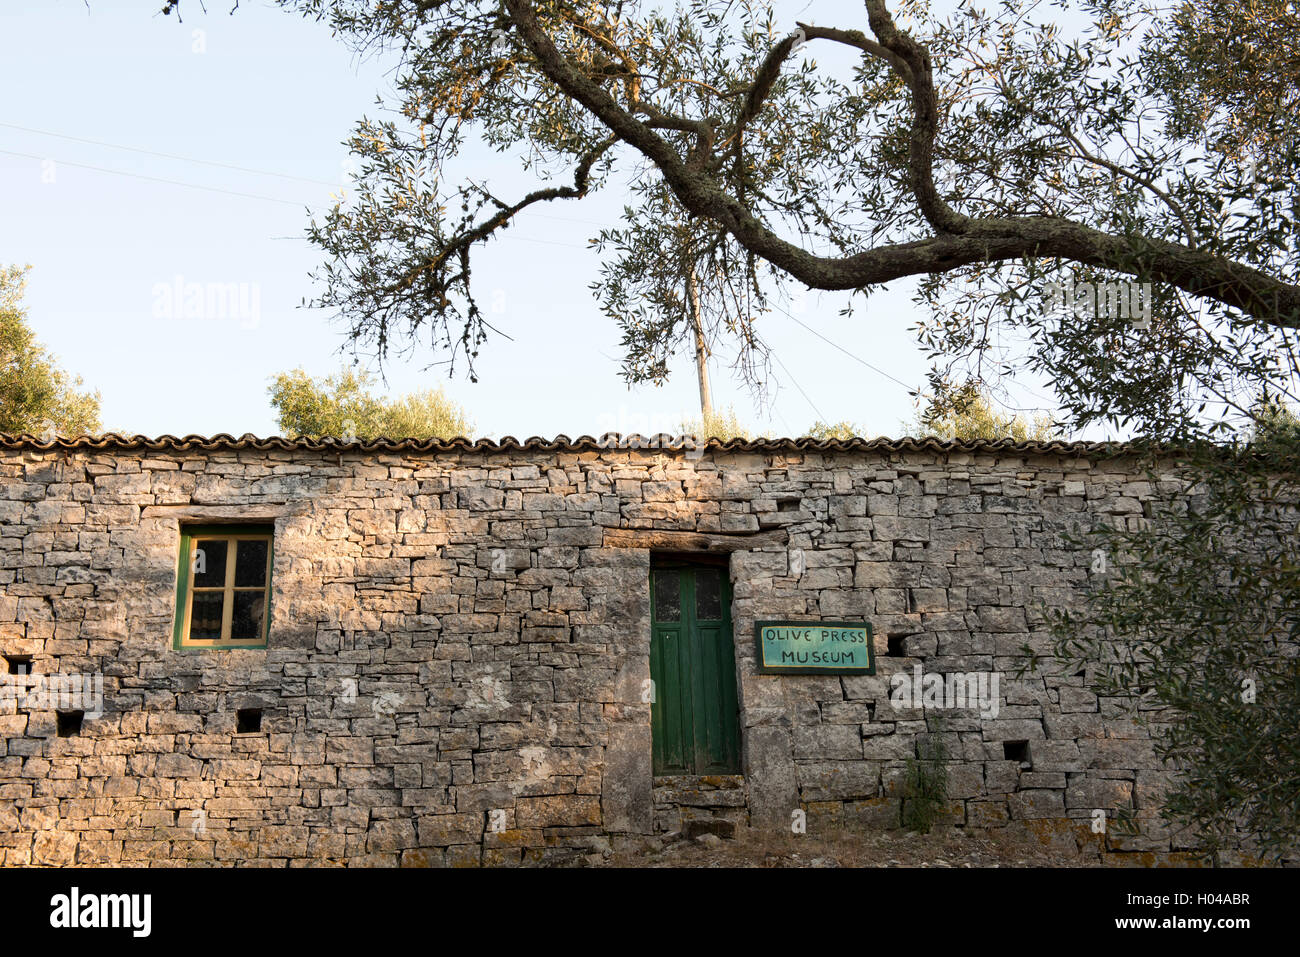 The Olive Press Museum on the island of Paxos, The Ionian Islands, The Greek Islands, Greece, Europe - Stock Image